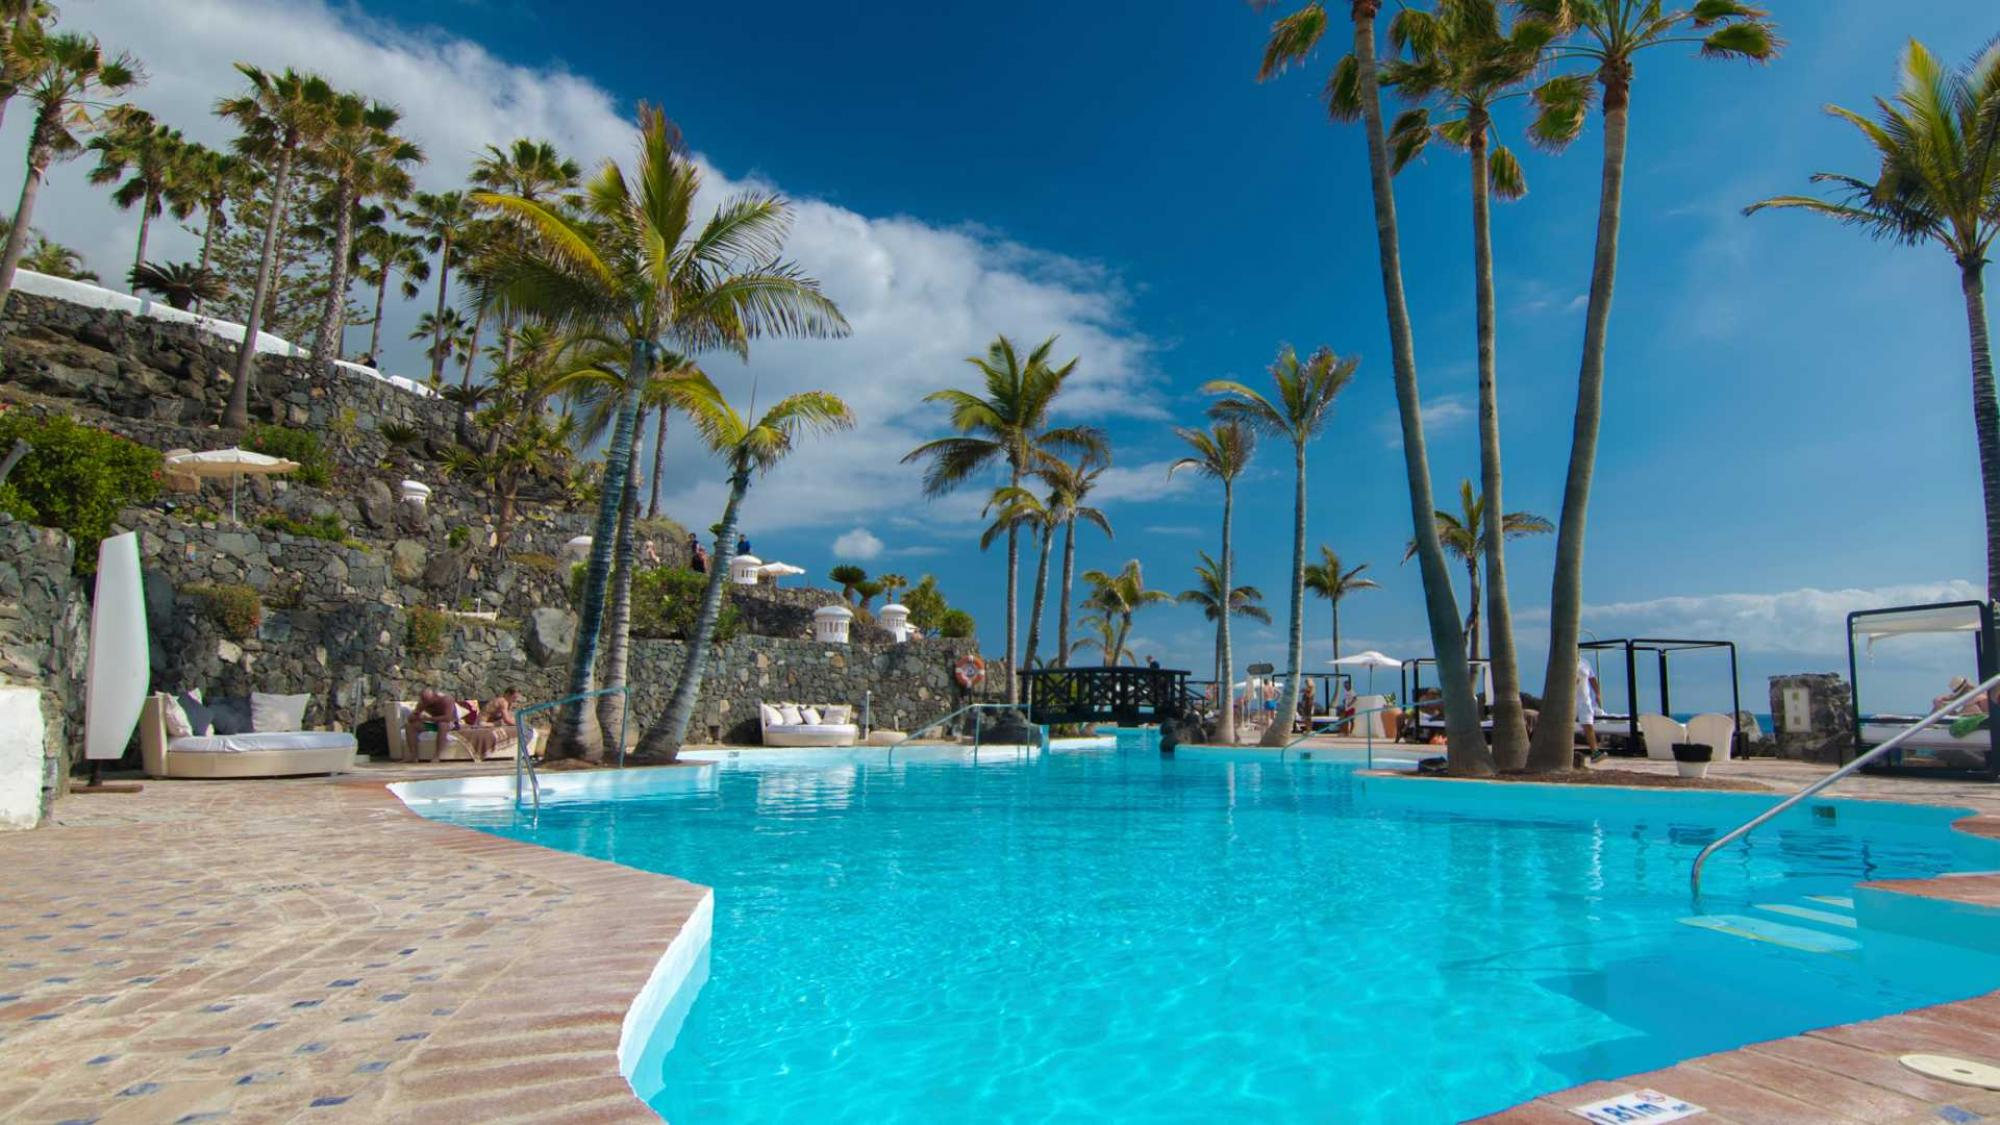 View Hotel Jardin Tropical's lovely main pool situated in brilliant Tenerife.